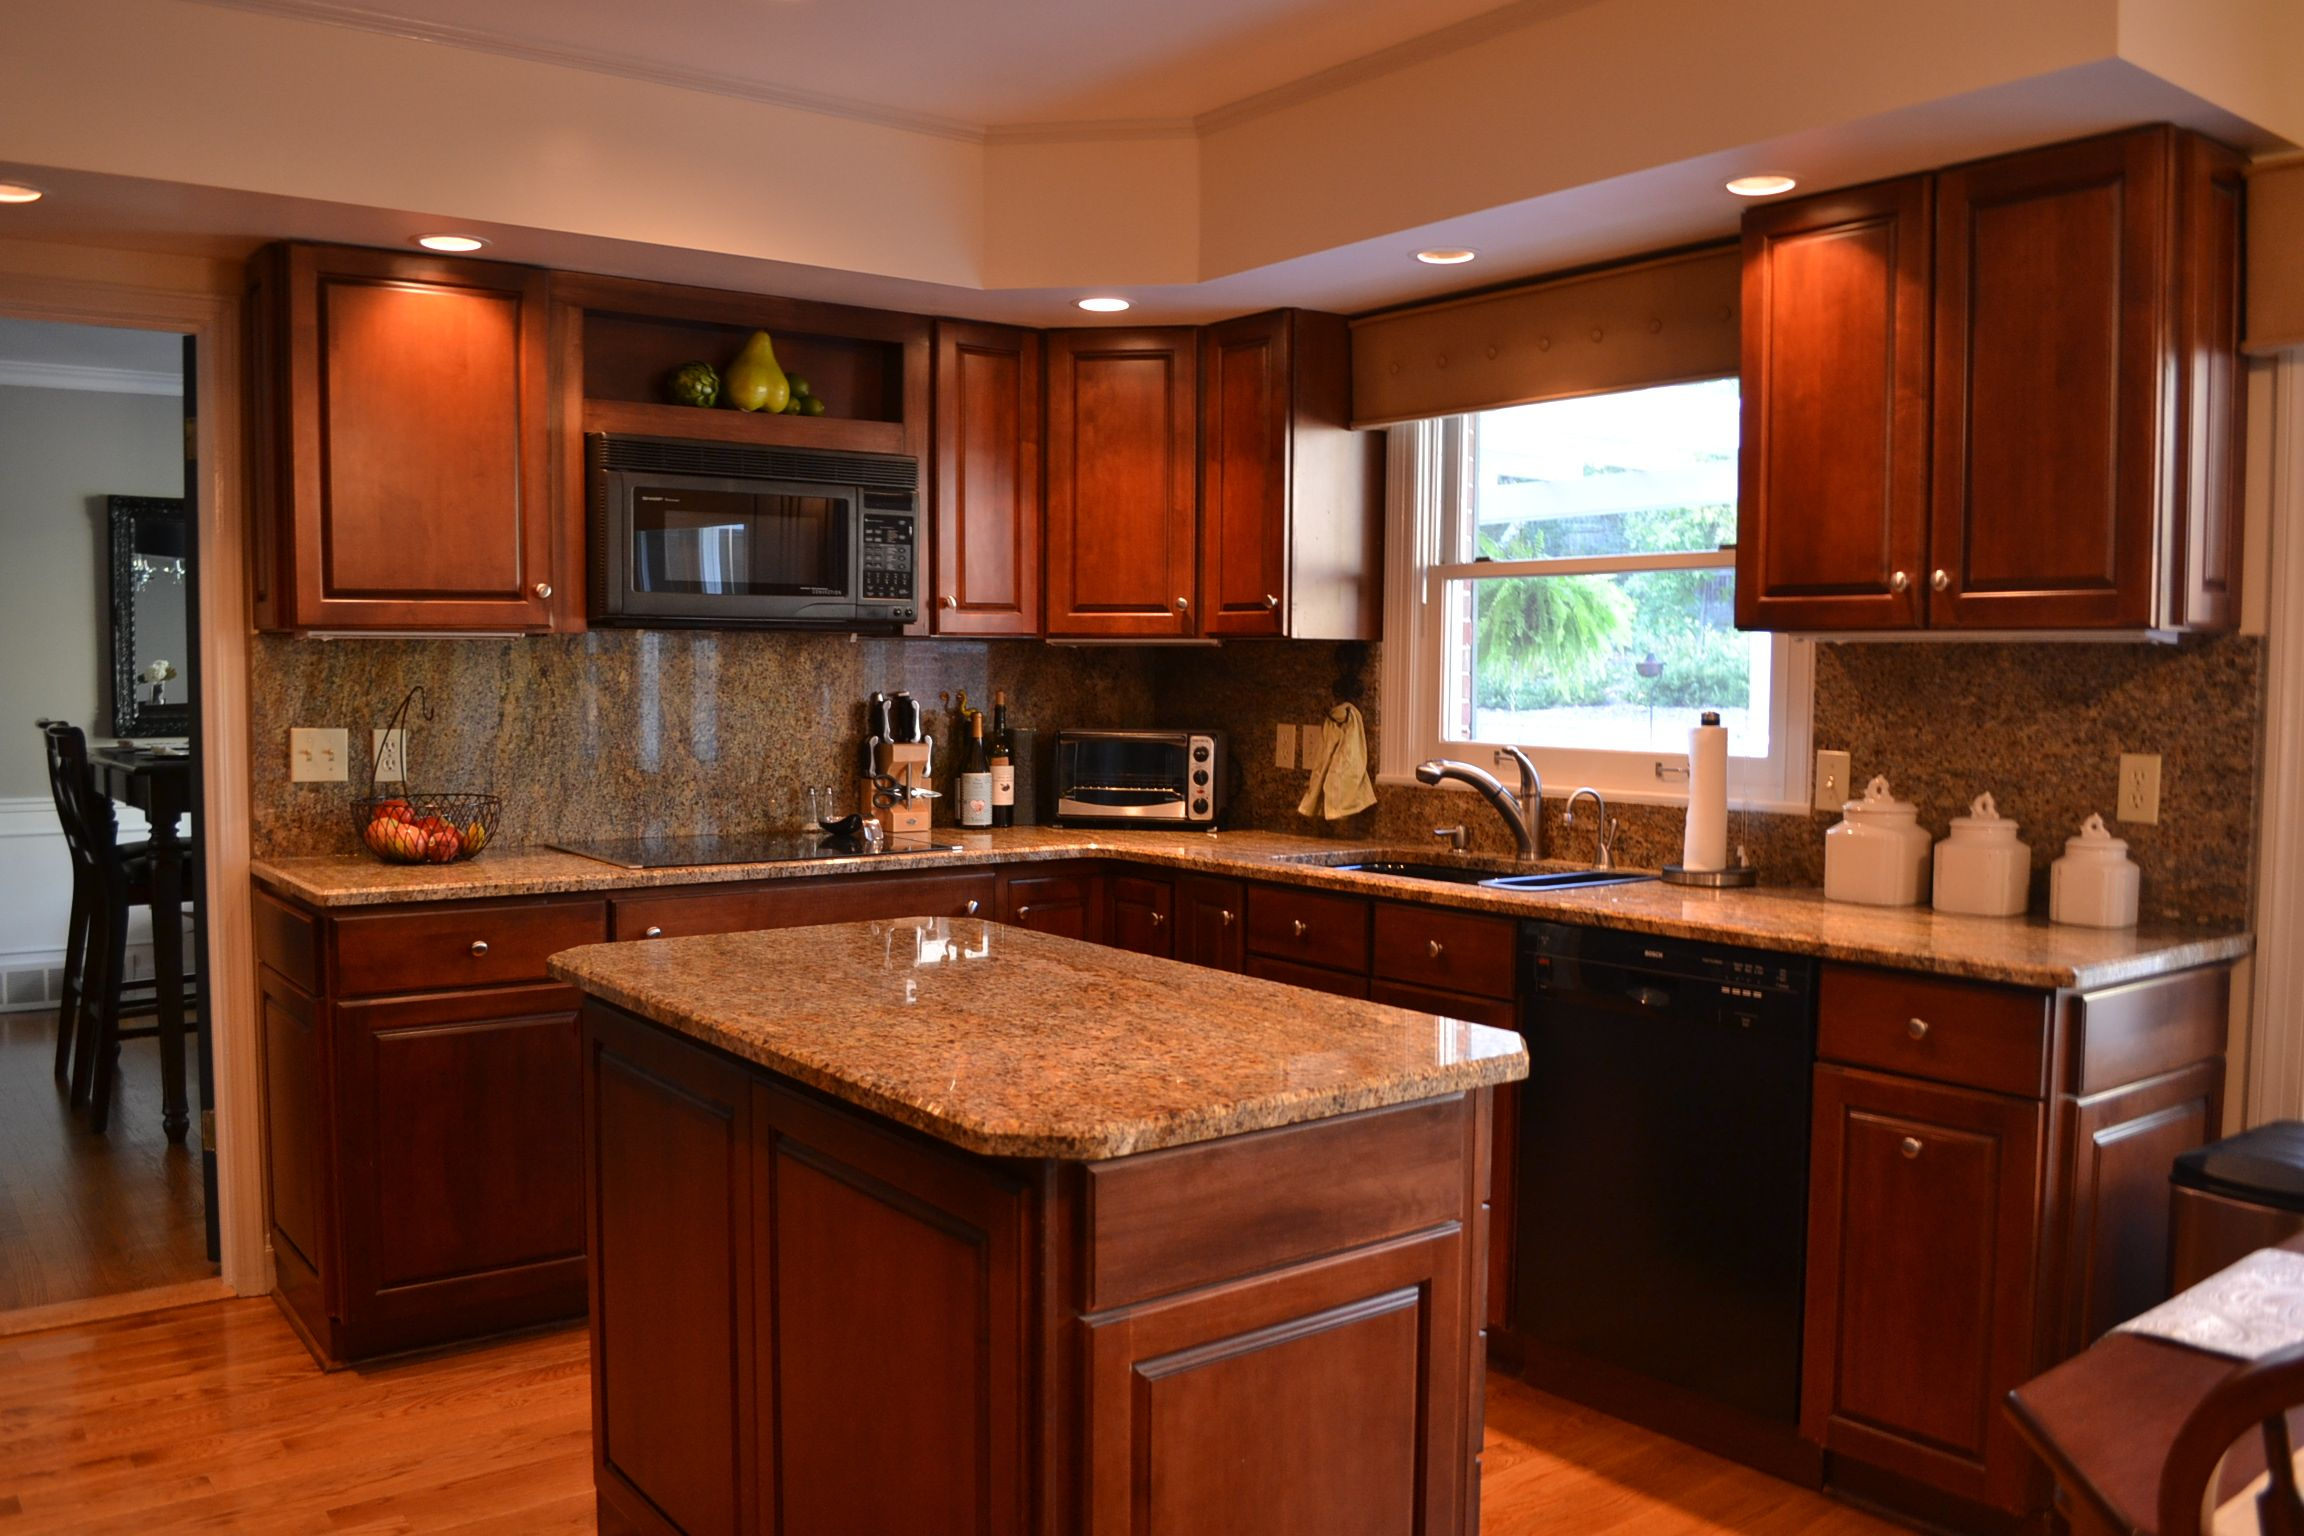 Cherry Cabinets With Granite Countertops   Cherry Cabinets With Santa  Cecilia Countertop   Granite Worktops       Decorating Ideas   Pinterest    Granite. Cherry Cabinets With Granite Countertops   Cherry Cabinets With